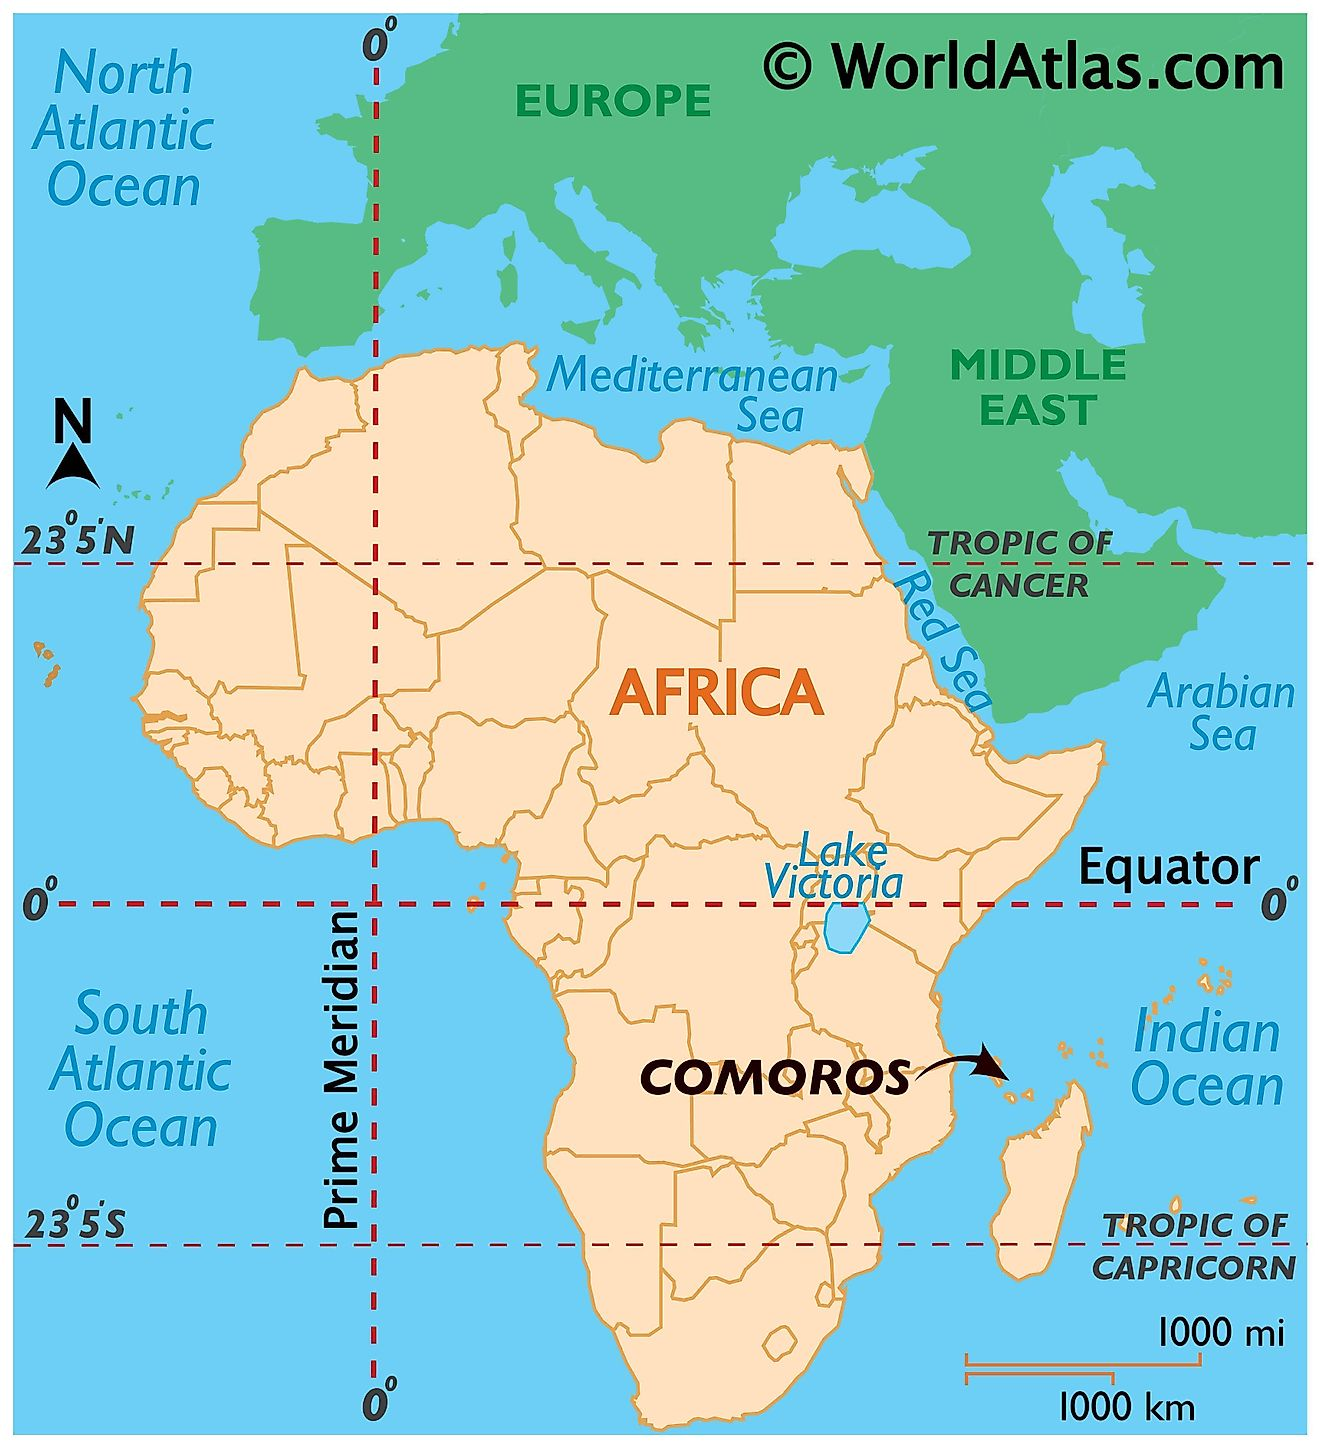 Map showing location of Comoros in the world.